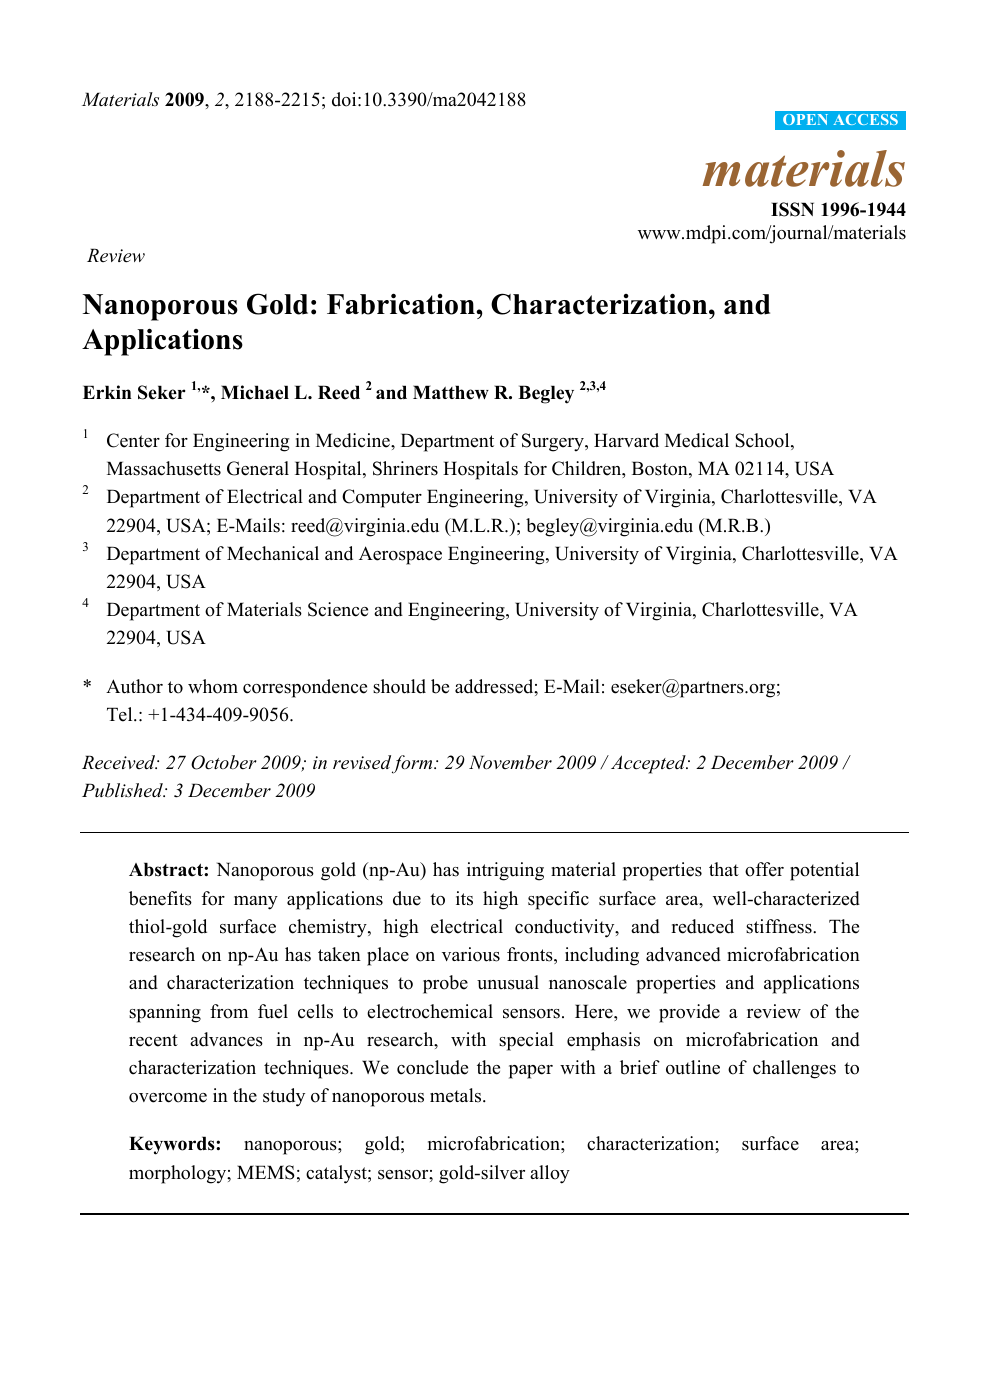 Nanoporous Gold: Fabrication, Characterization, and